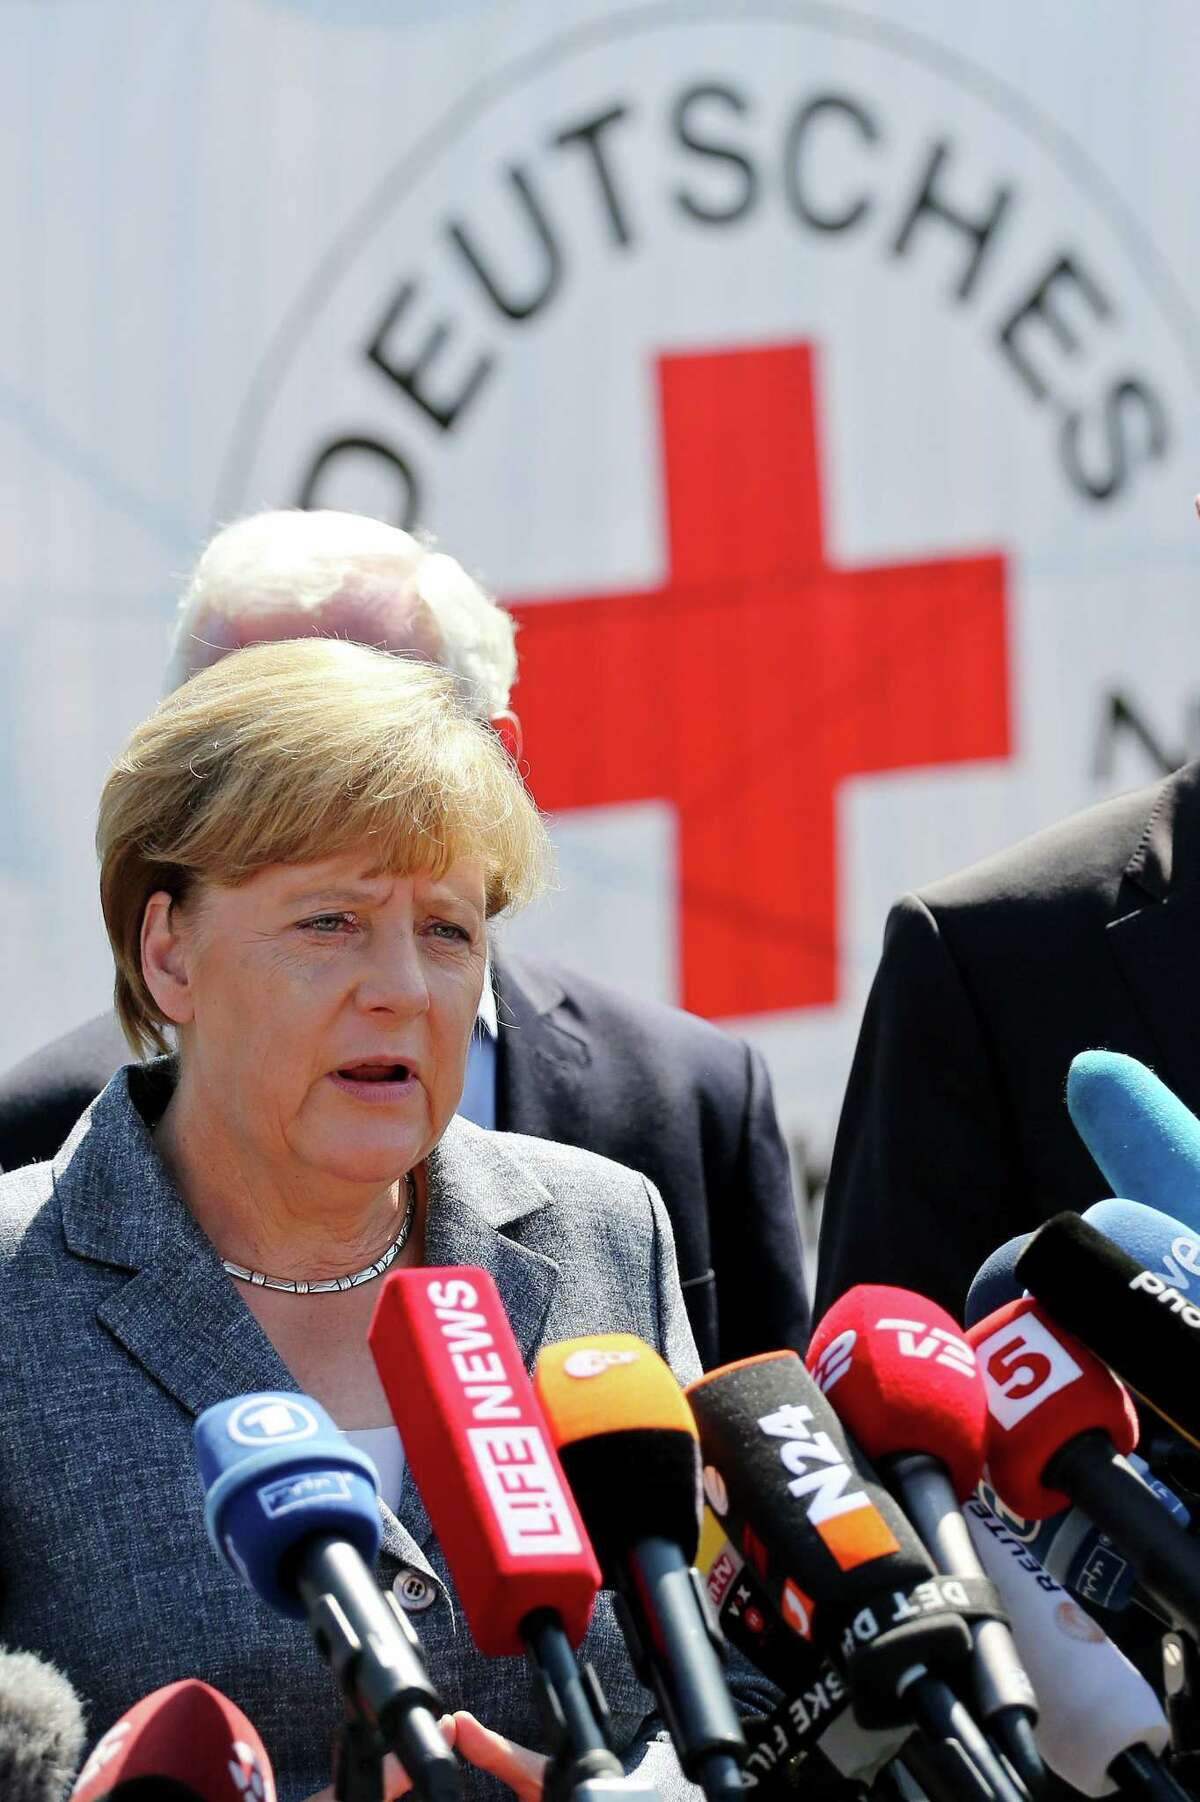 German Chancellor Angela Merkel addresses the media after her visit to a refugee shelter that was attacked by far-right protesters over the weekend in Heidenau,, near Dresden, eastern Germany, Wednesday, Aug. 26, 2015.